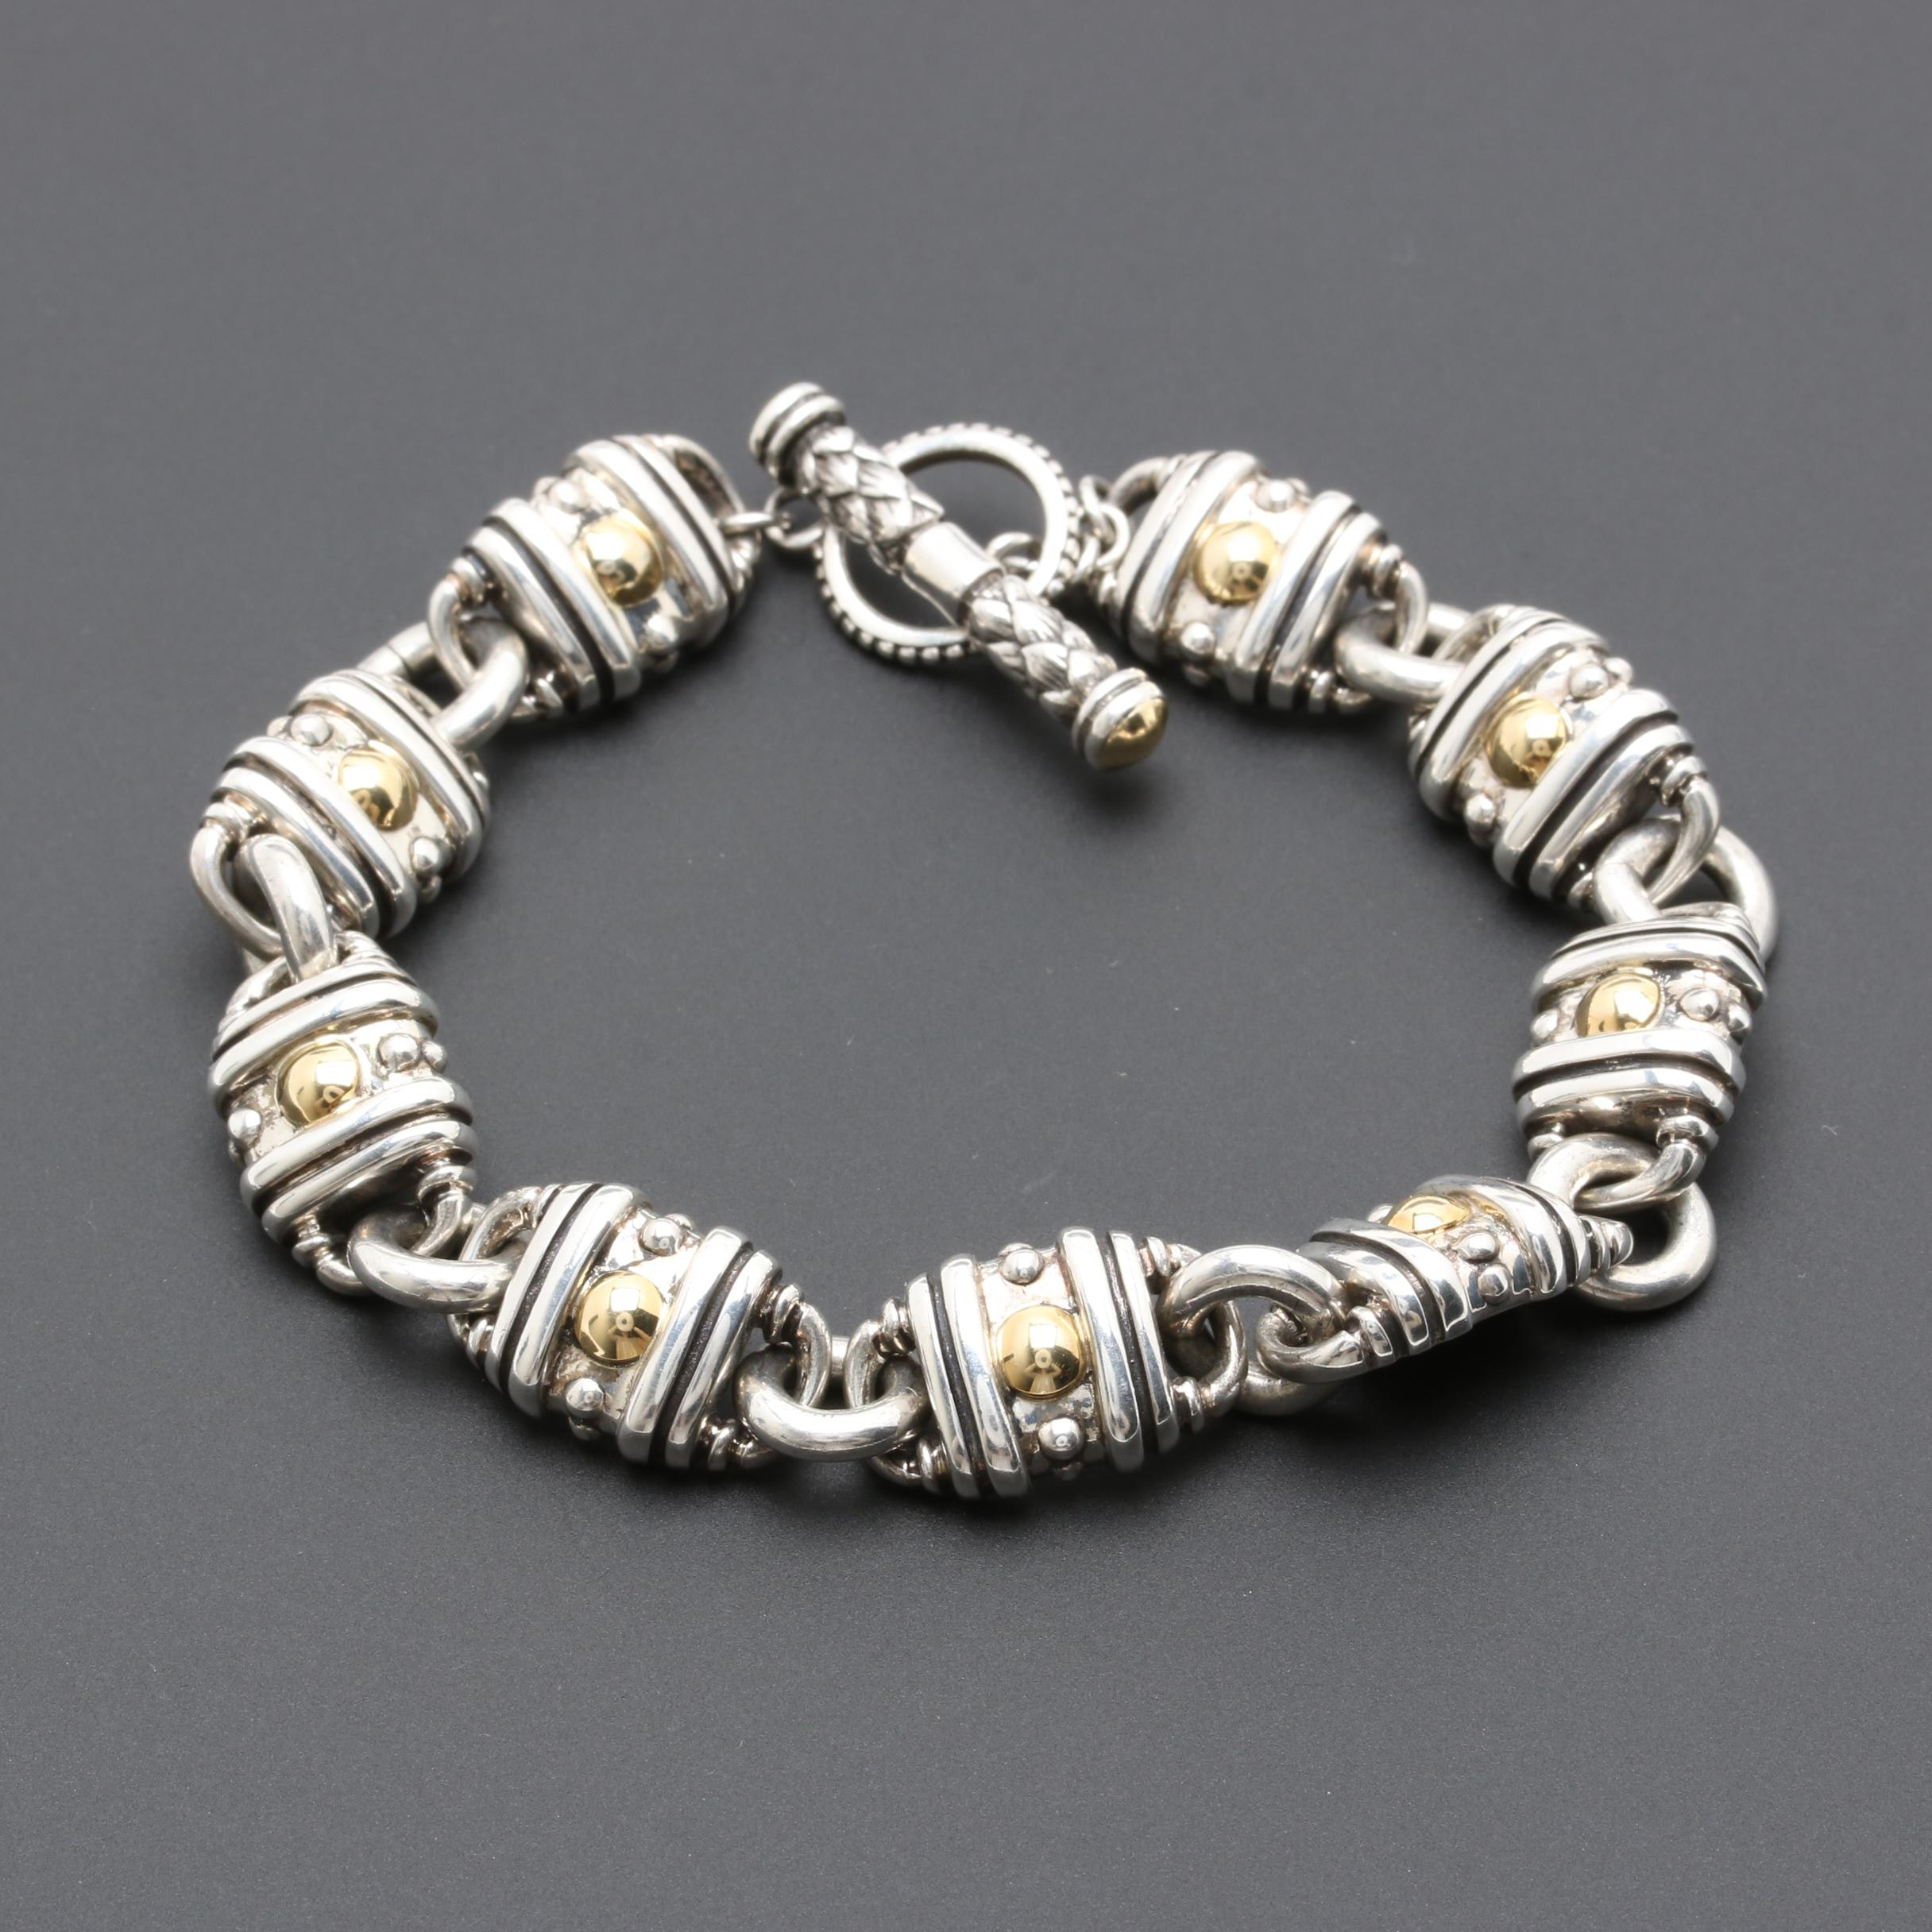 Sterling Silver Custom Link Bracelet with Gold Wash Accents